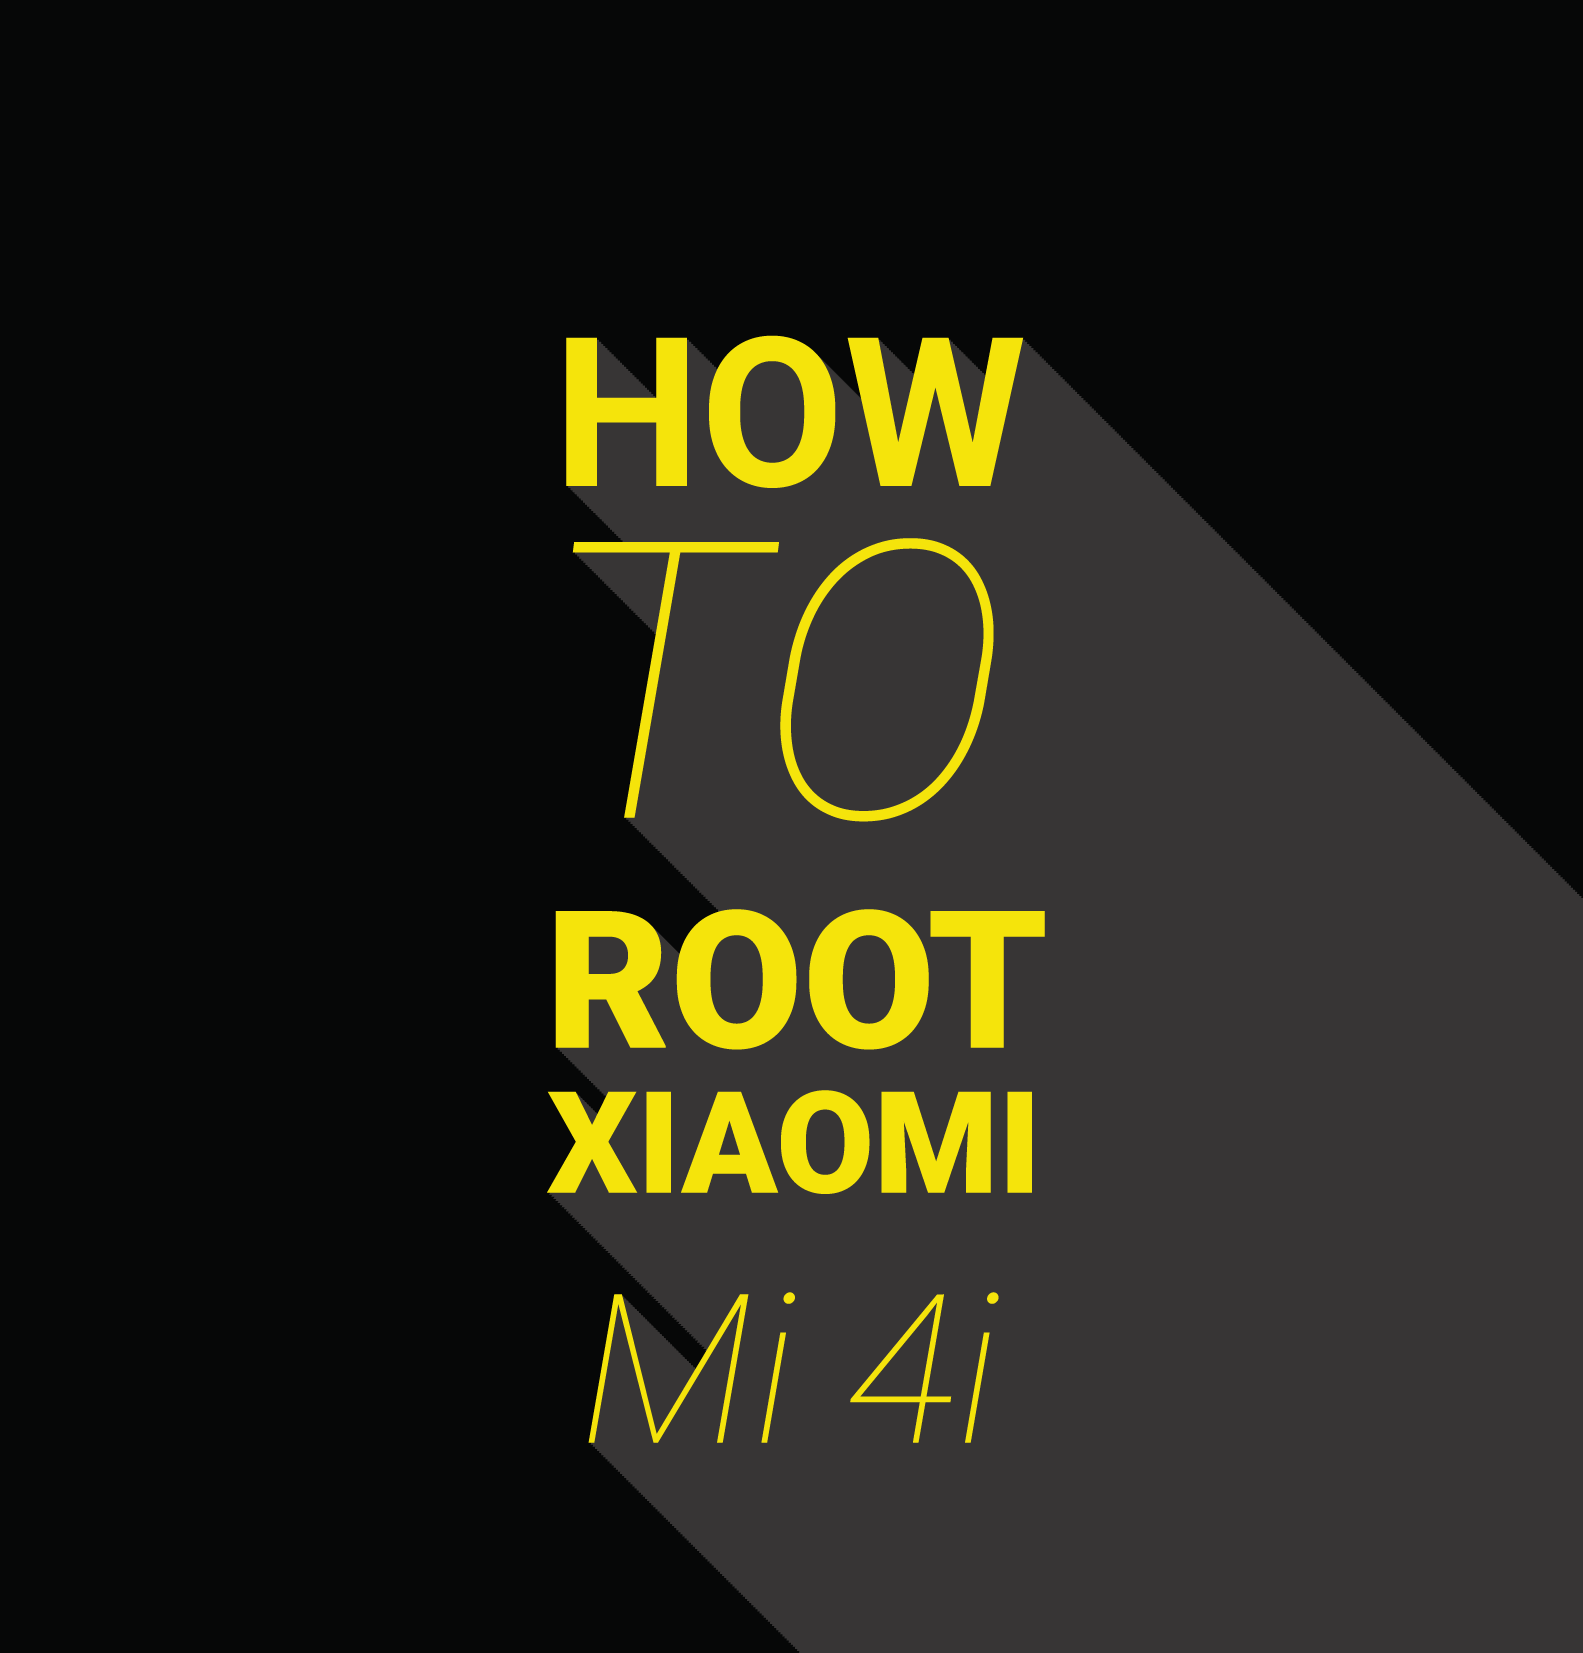 Rooting Xiaomi : How To Root Xiaomi Mi Pad